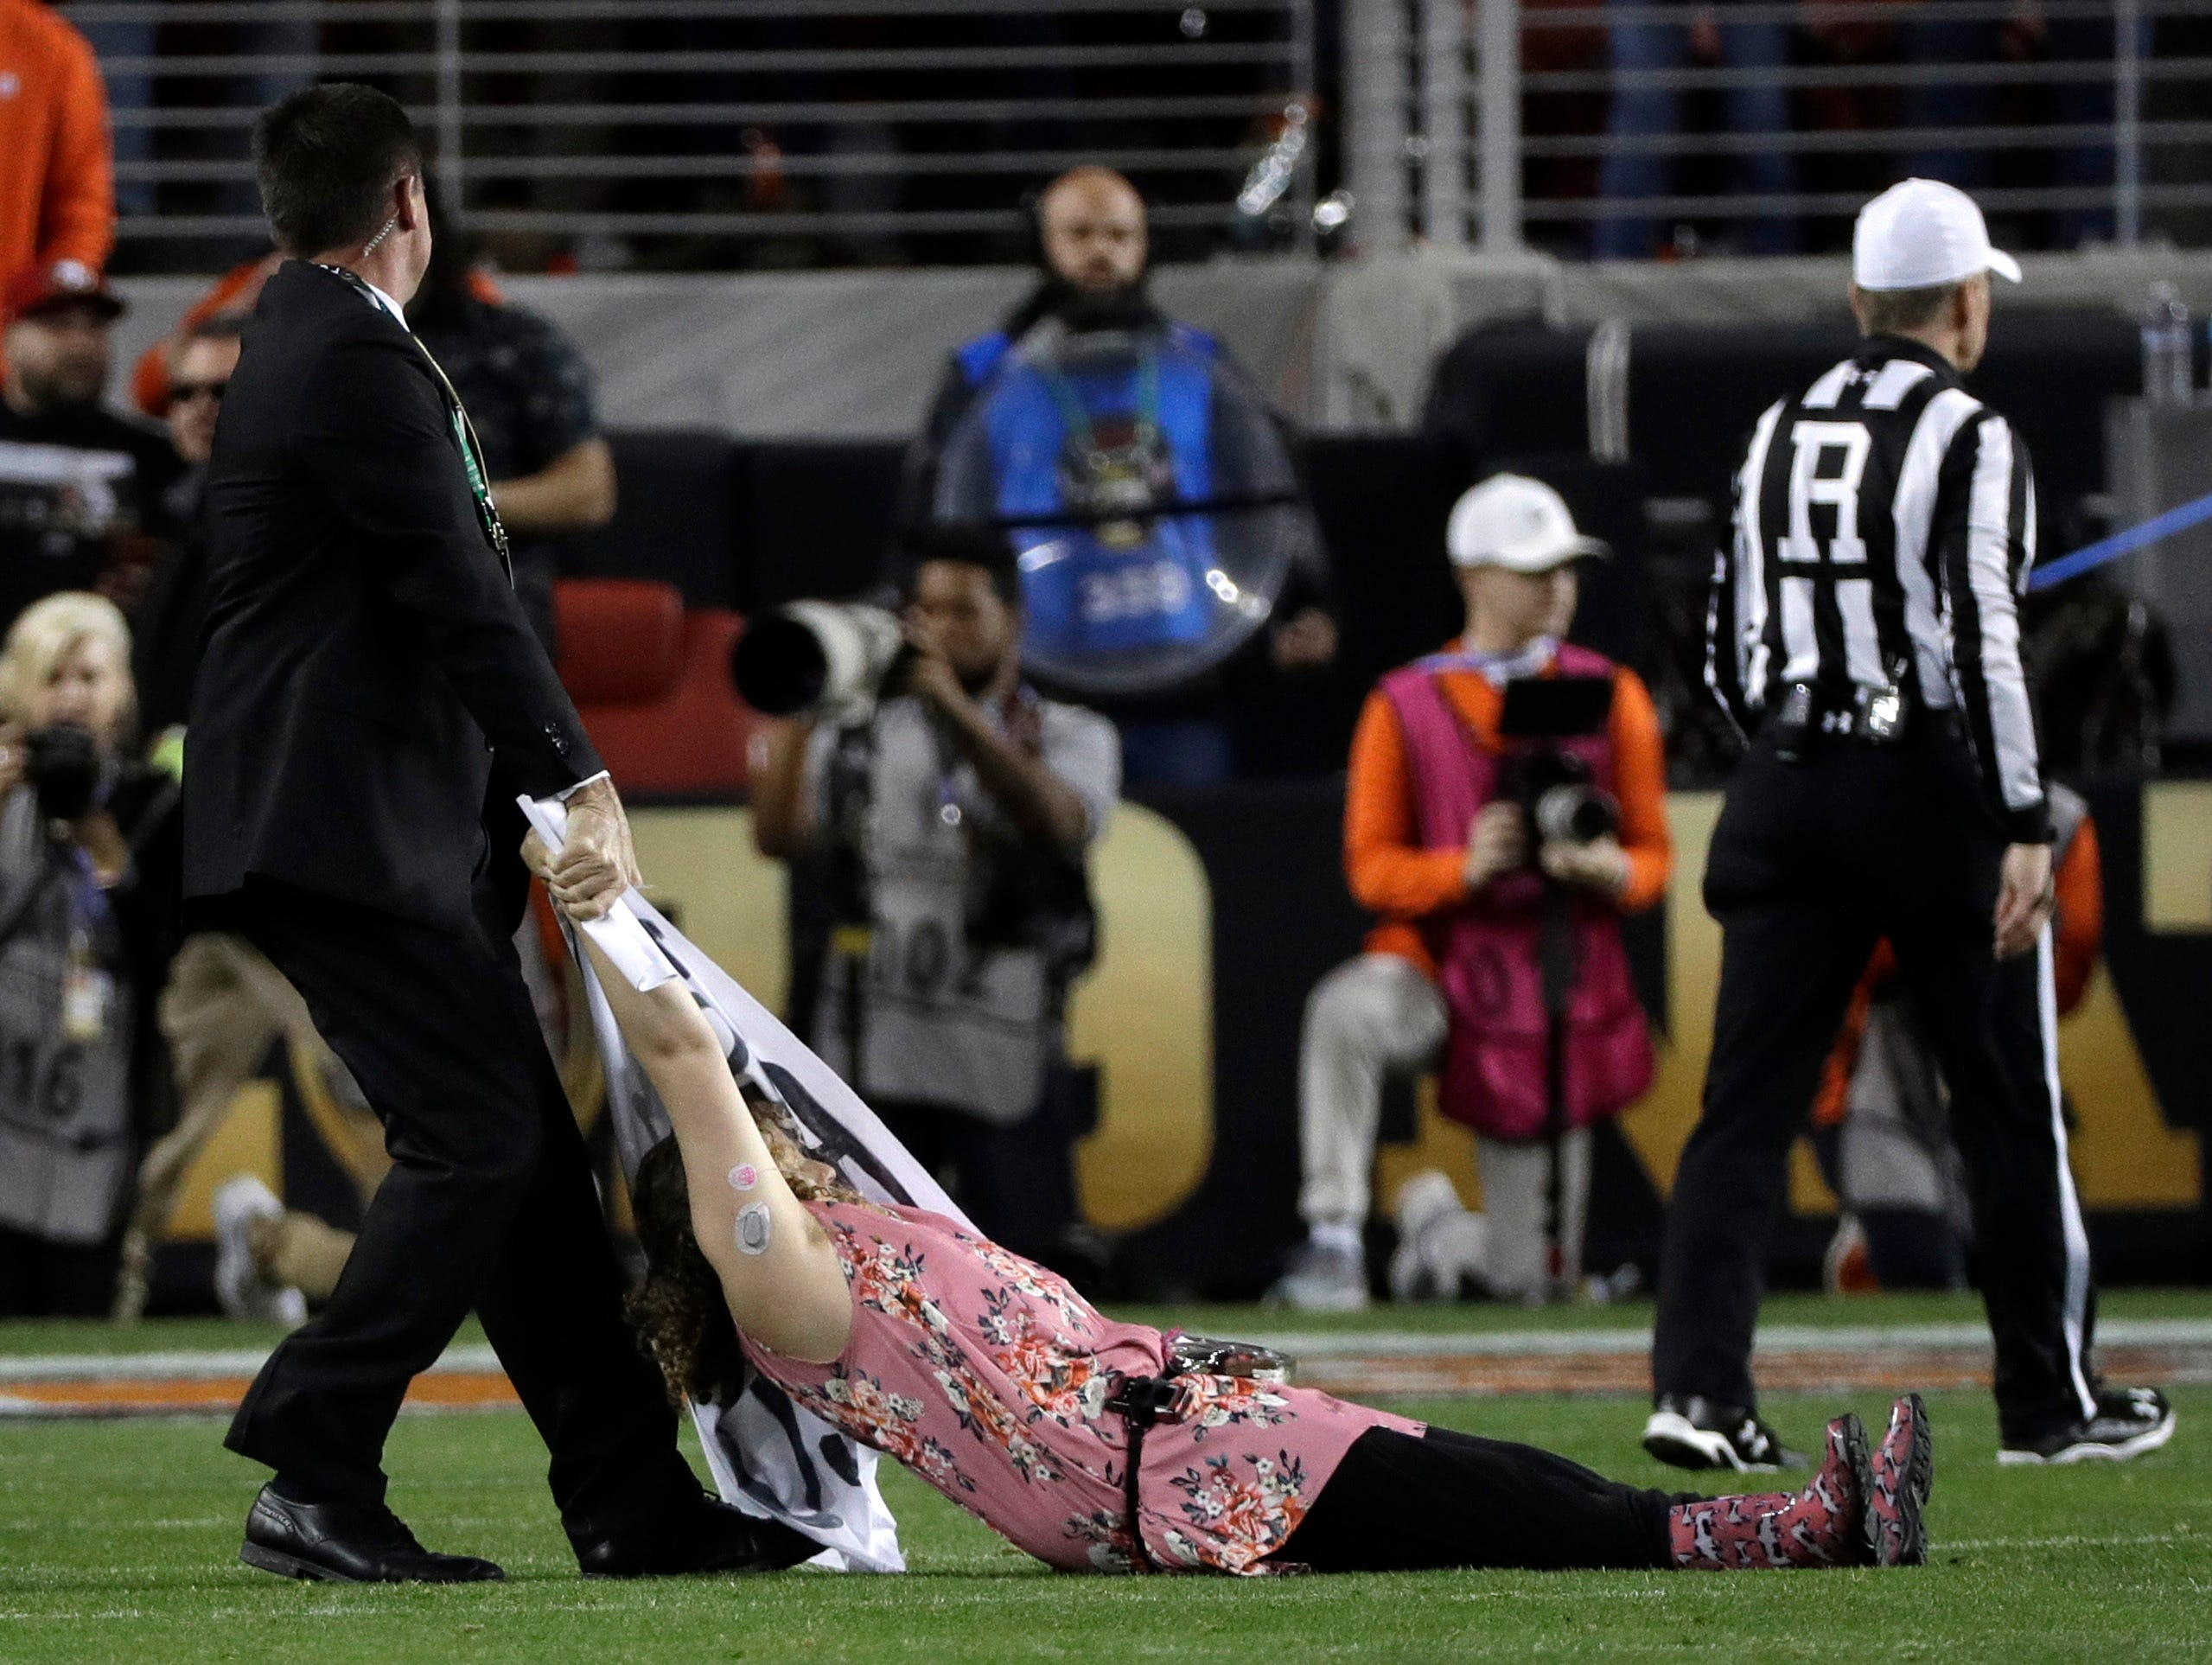 A fan is removed after running on the field during the first half the NCAA college football playoff championship game between Alabama and Clemson, Monday, Jan. 7, 2019, in Santa Clara, Calif. (AP Photo/David J. Phillip)